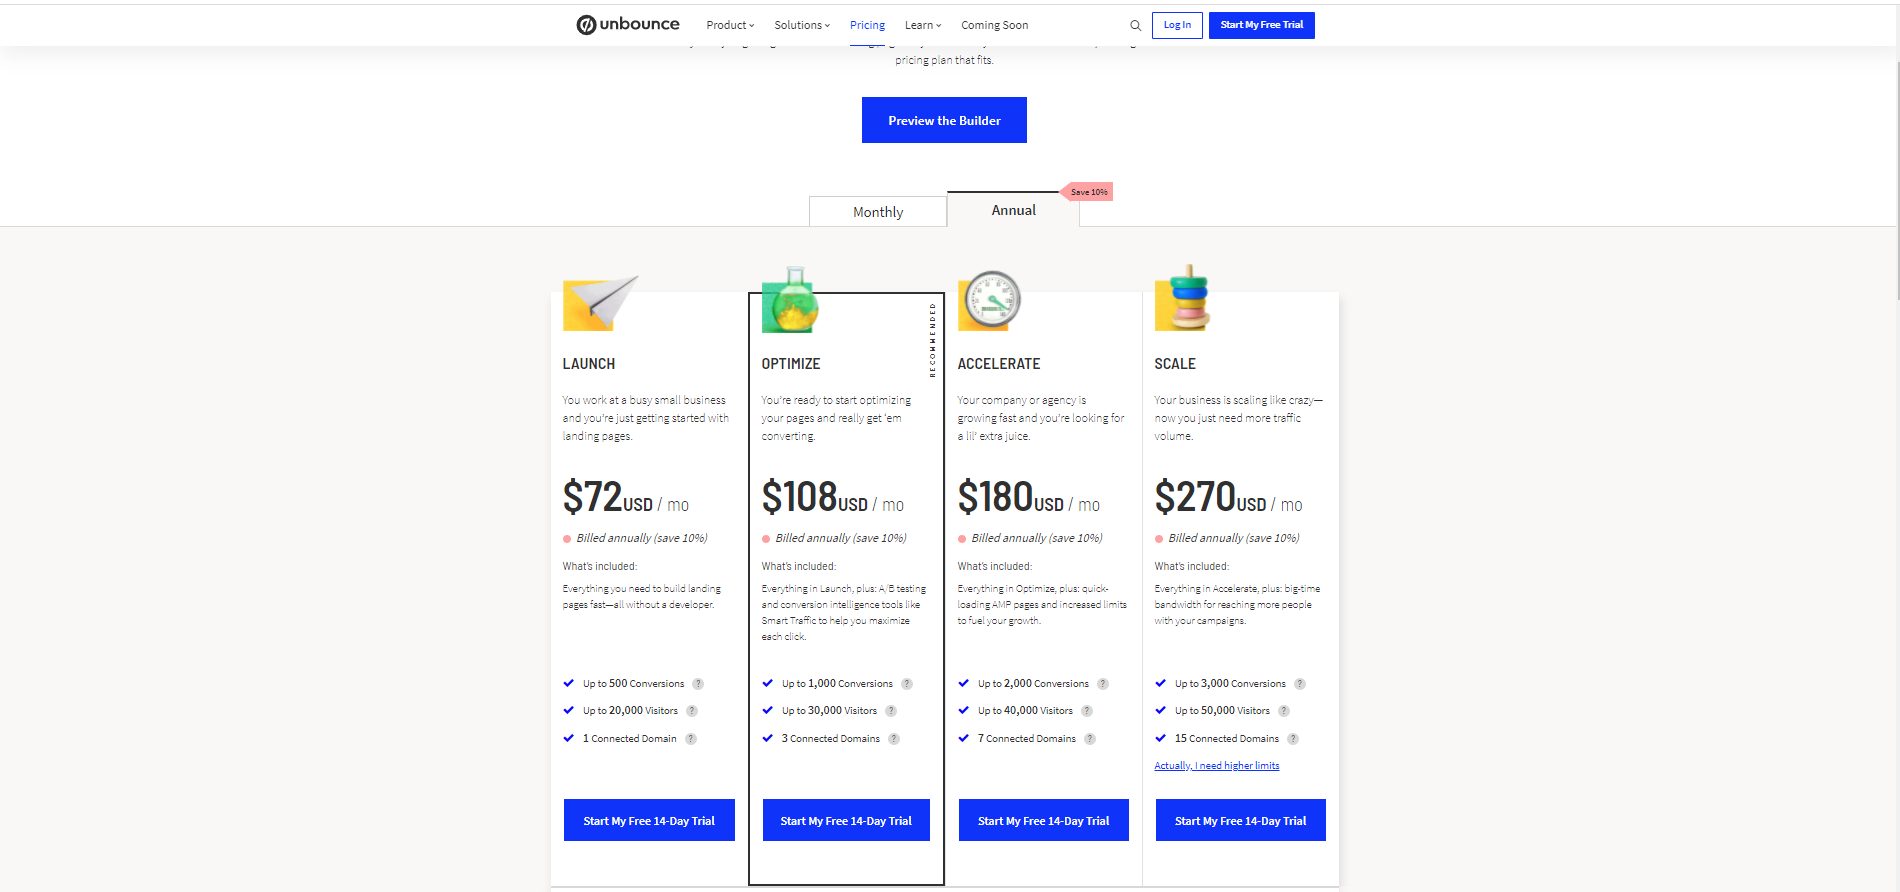 unbounce annual pricing